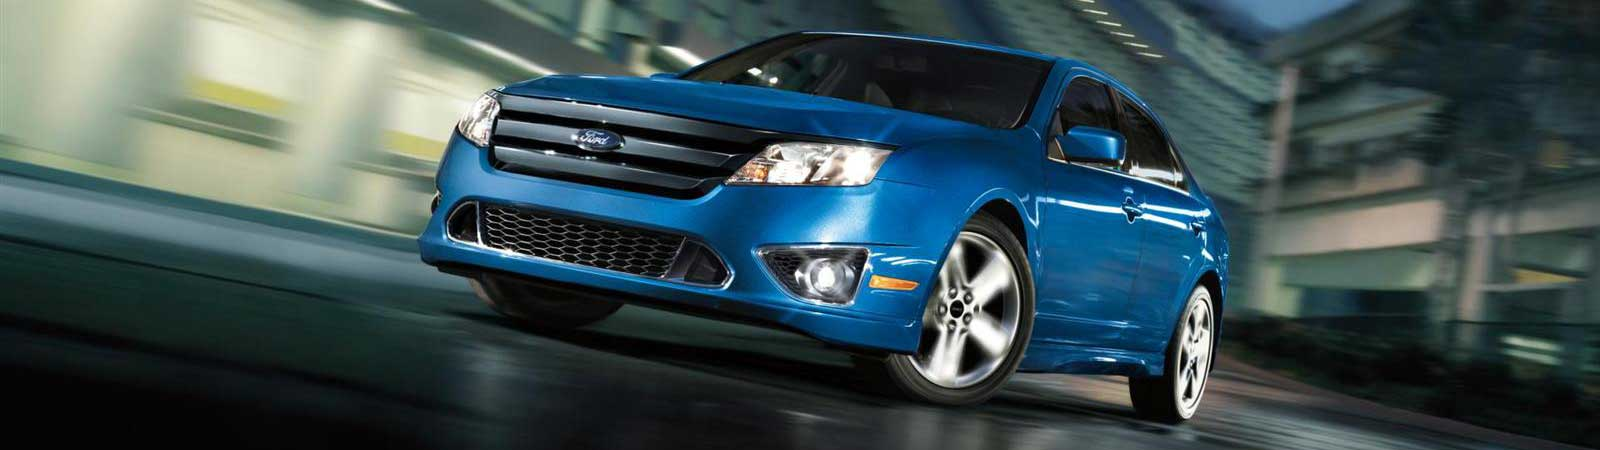 Day Ford Monroeville >> Day Ford Inc Car Dealer In Monroeville Pa